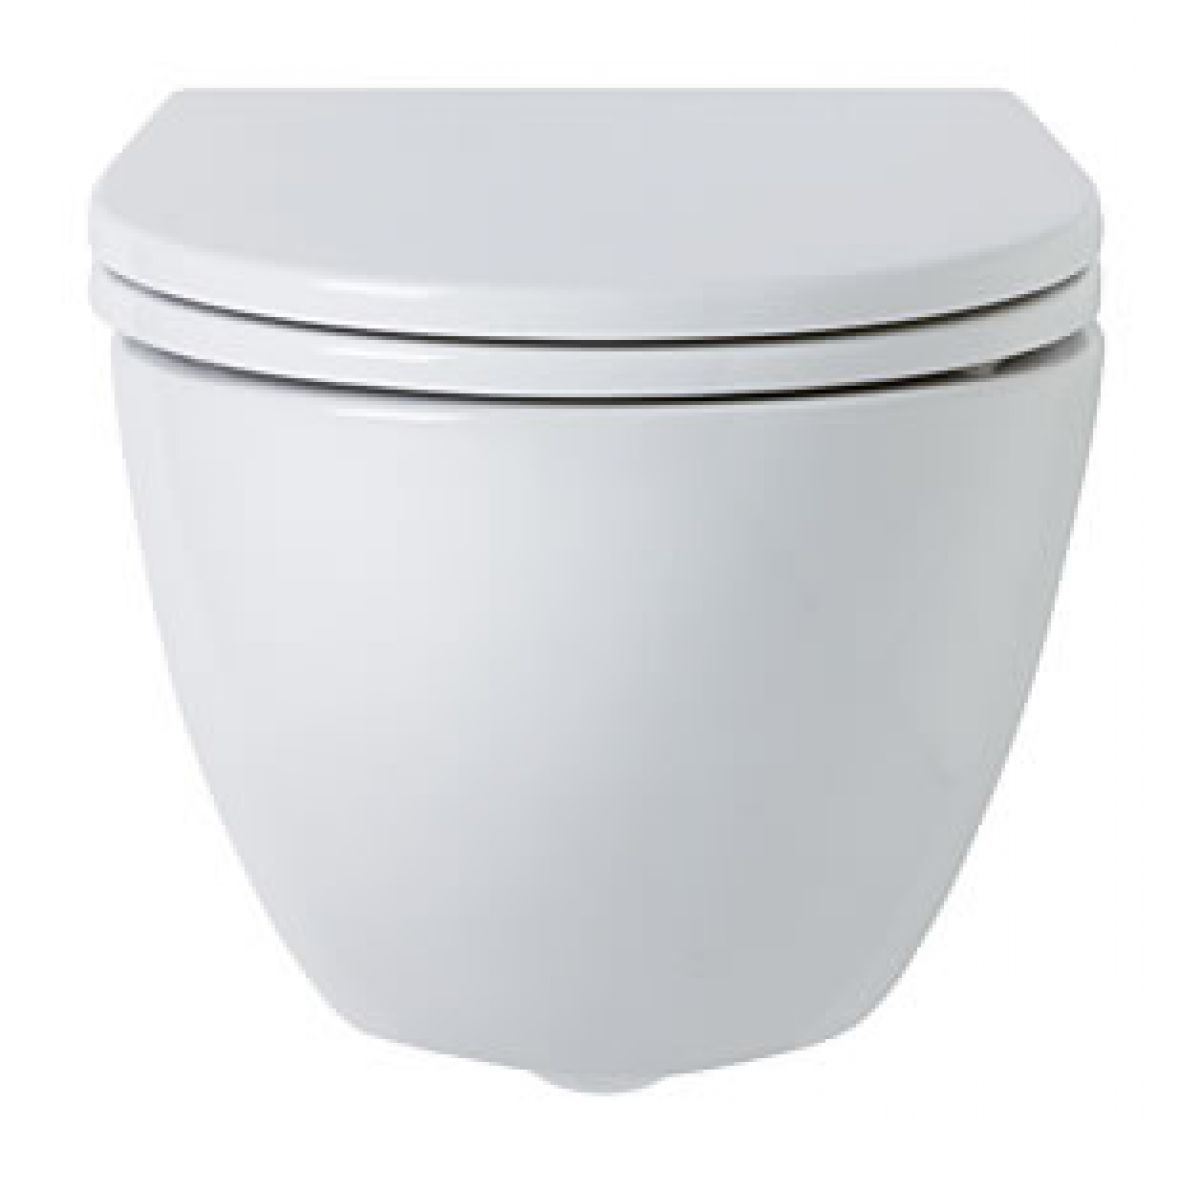 ideal standard white round wall hung toilet uk bathrooms. Black Bedroom Furniture Sets. Home Design Ideas